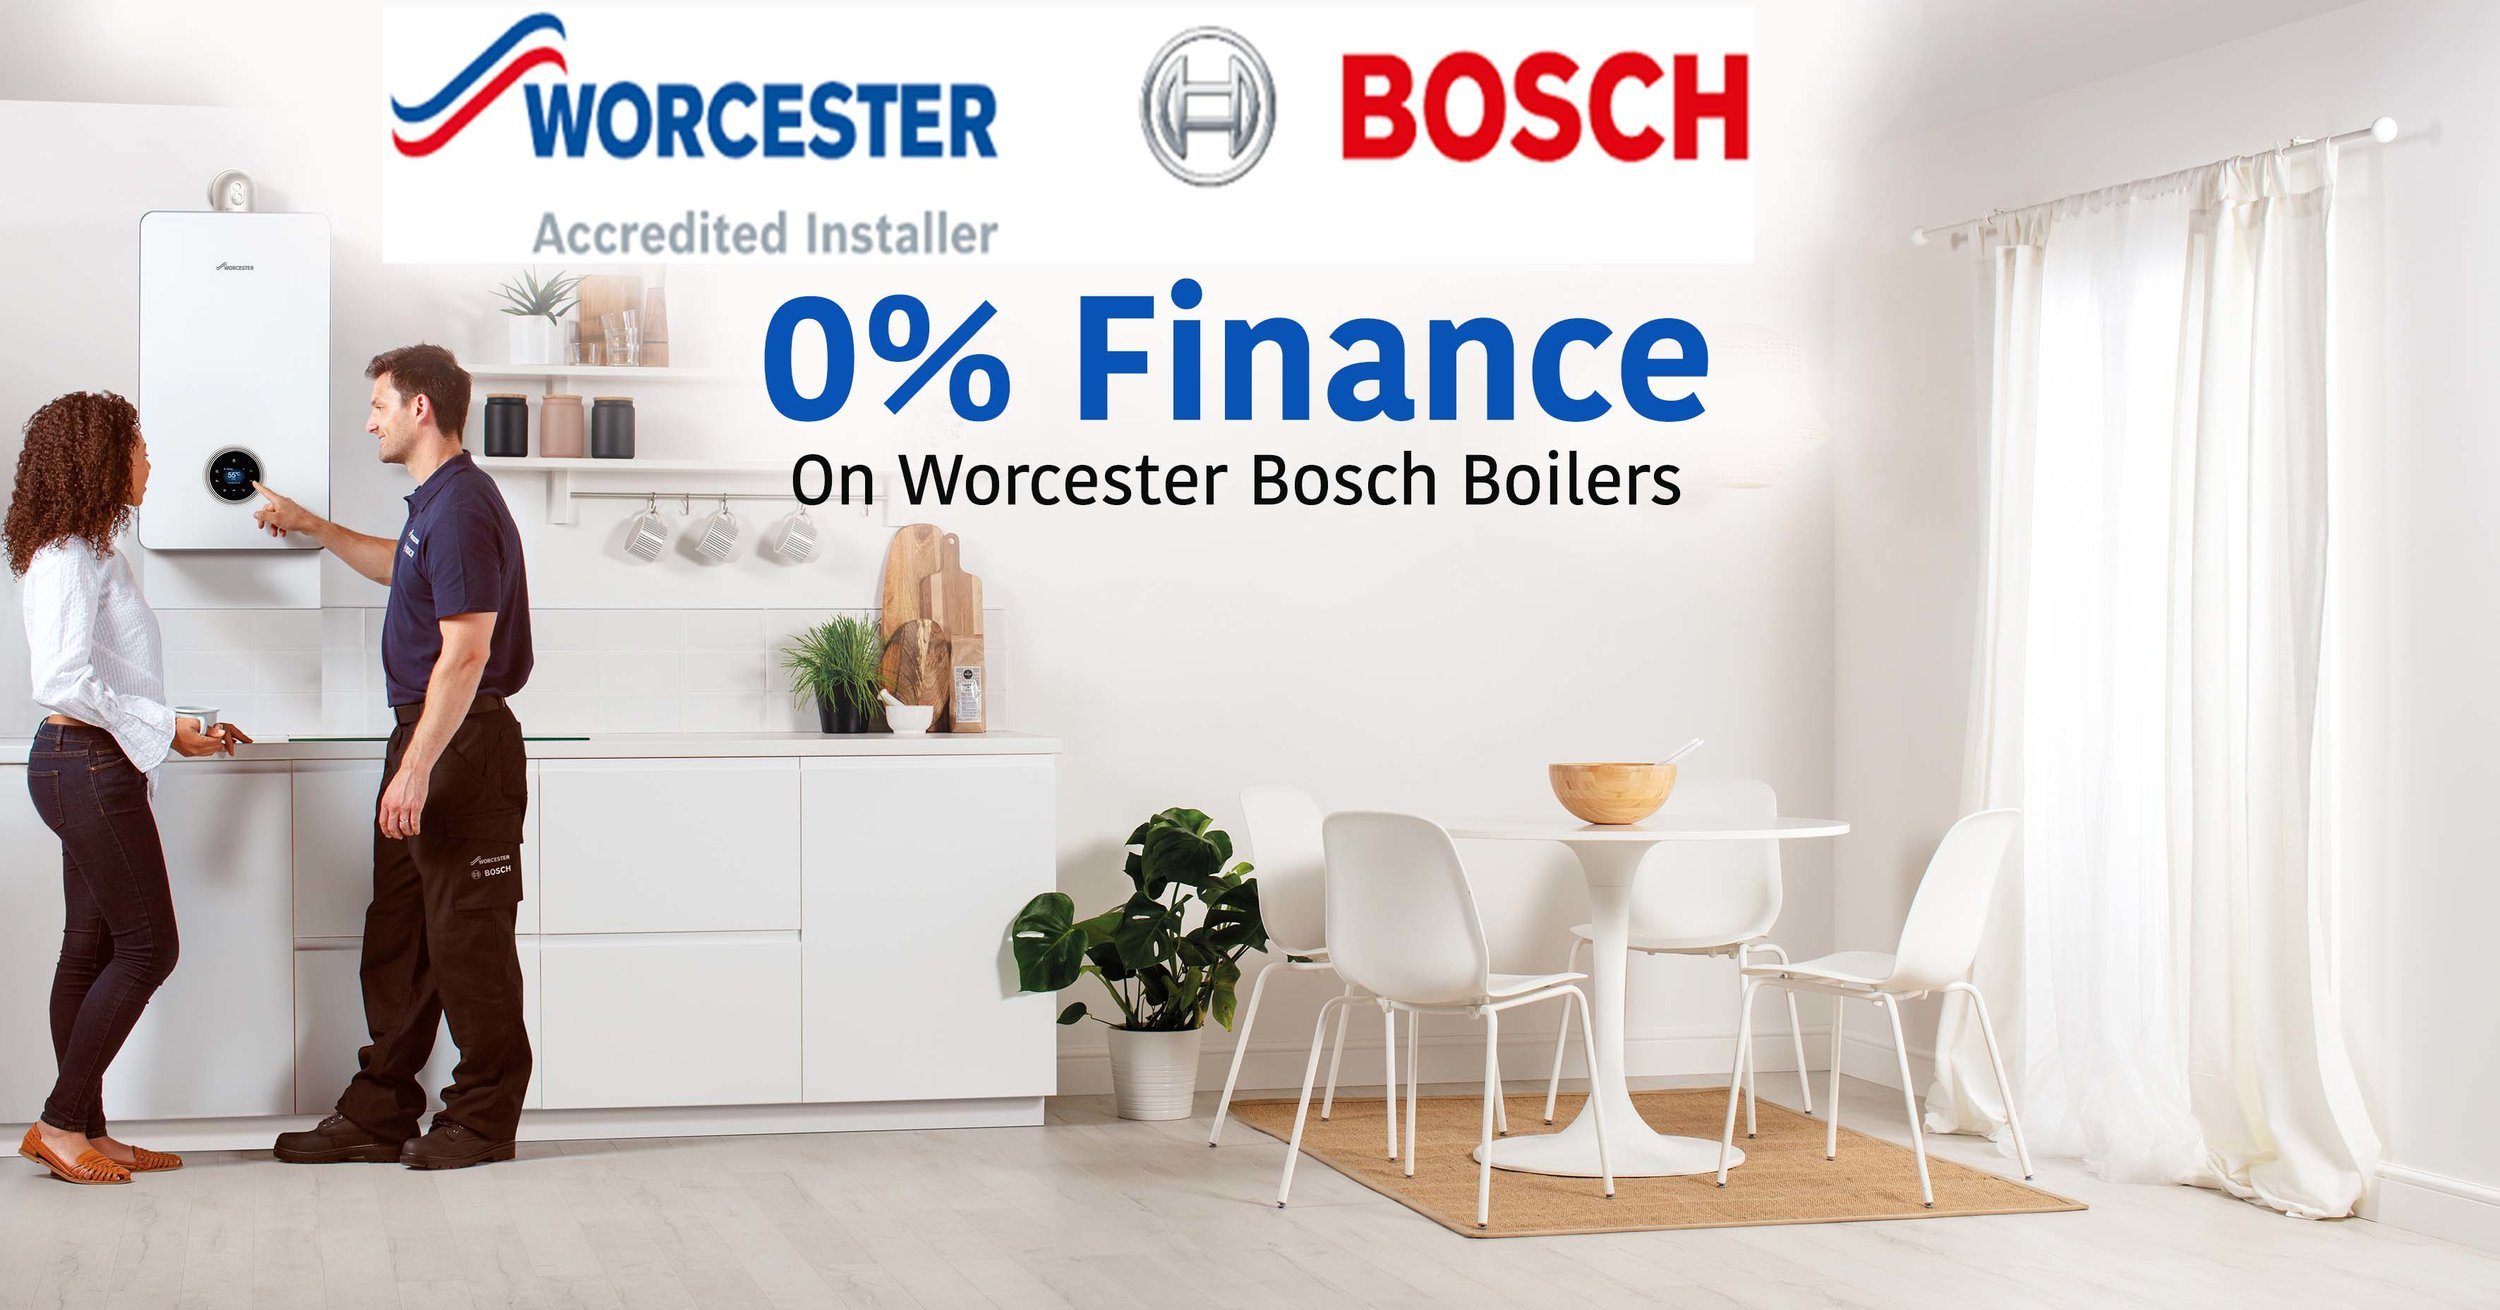 - As Worcester Bosch Accredited Installers, we will give you a 10 year guarantee on your new boiler, and carry out your first year's service for free.